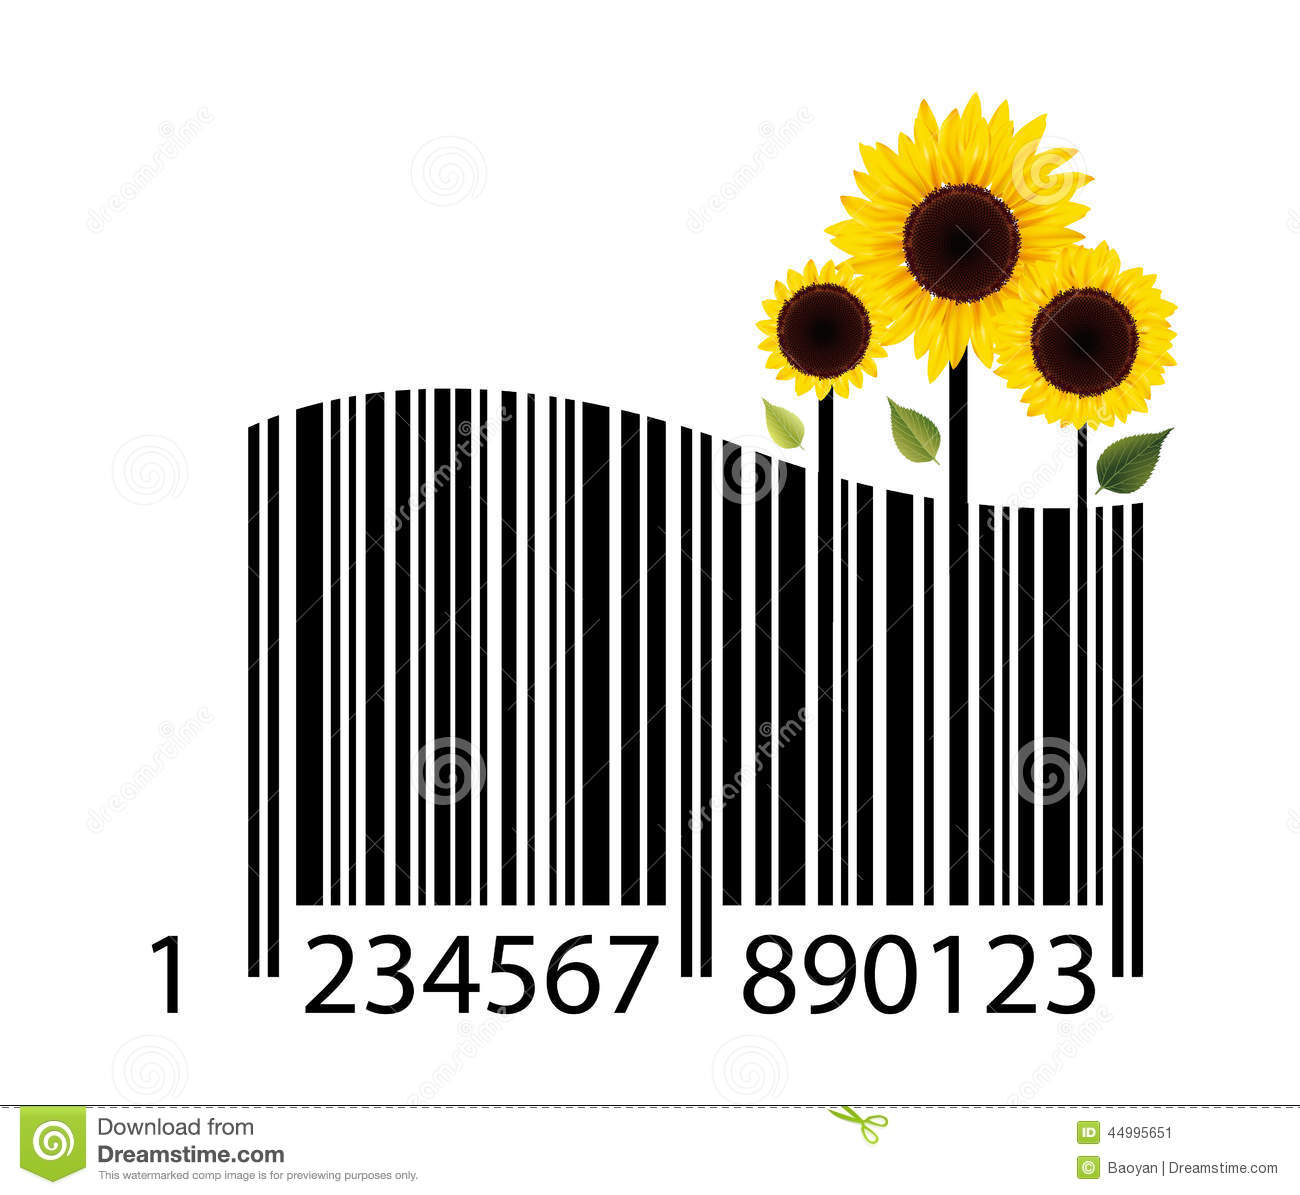 how to send raw daa to barcode printer